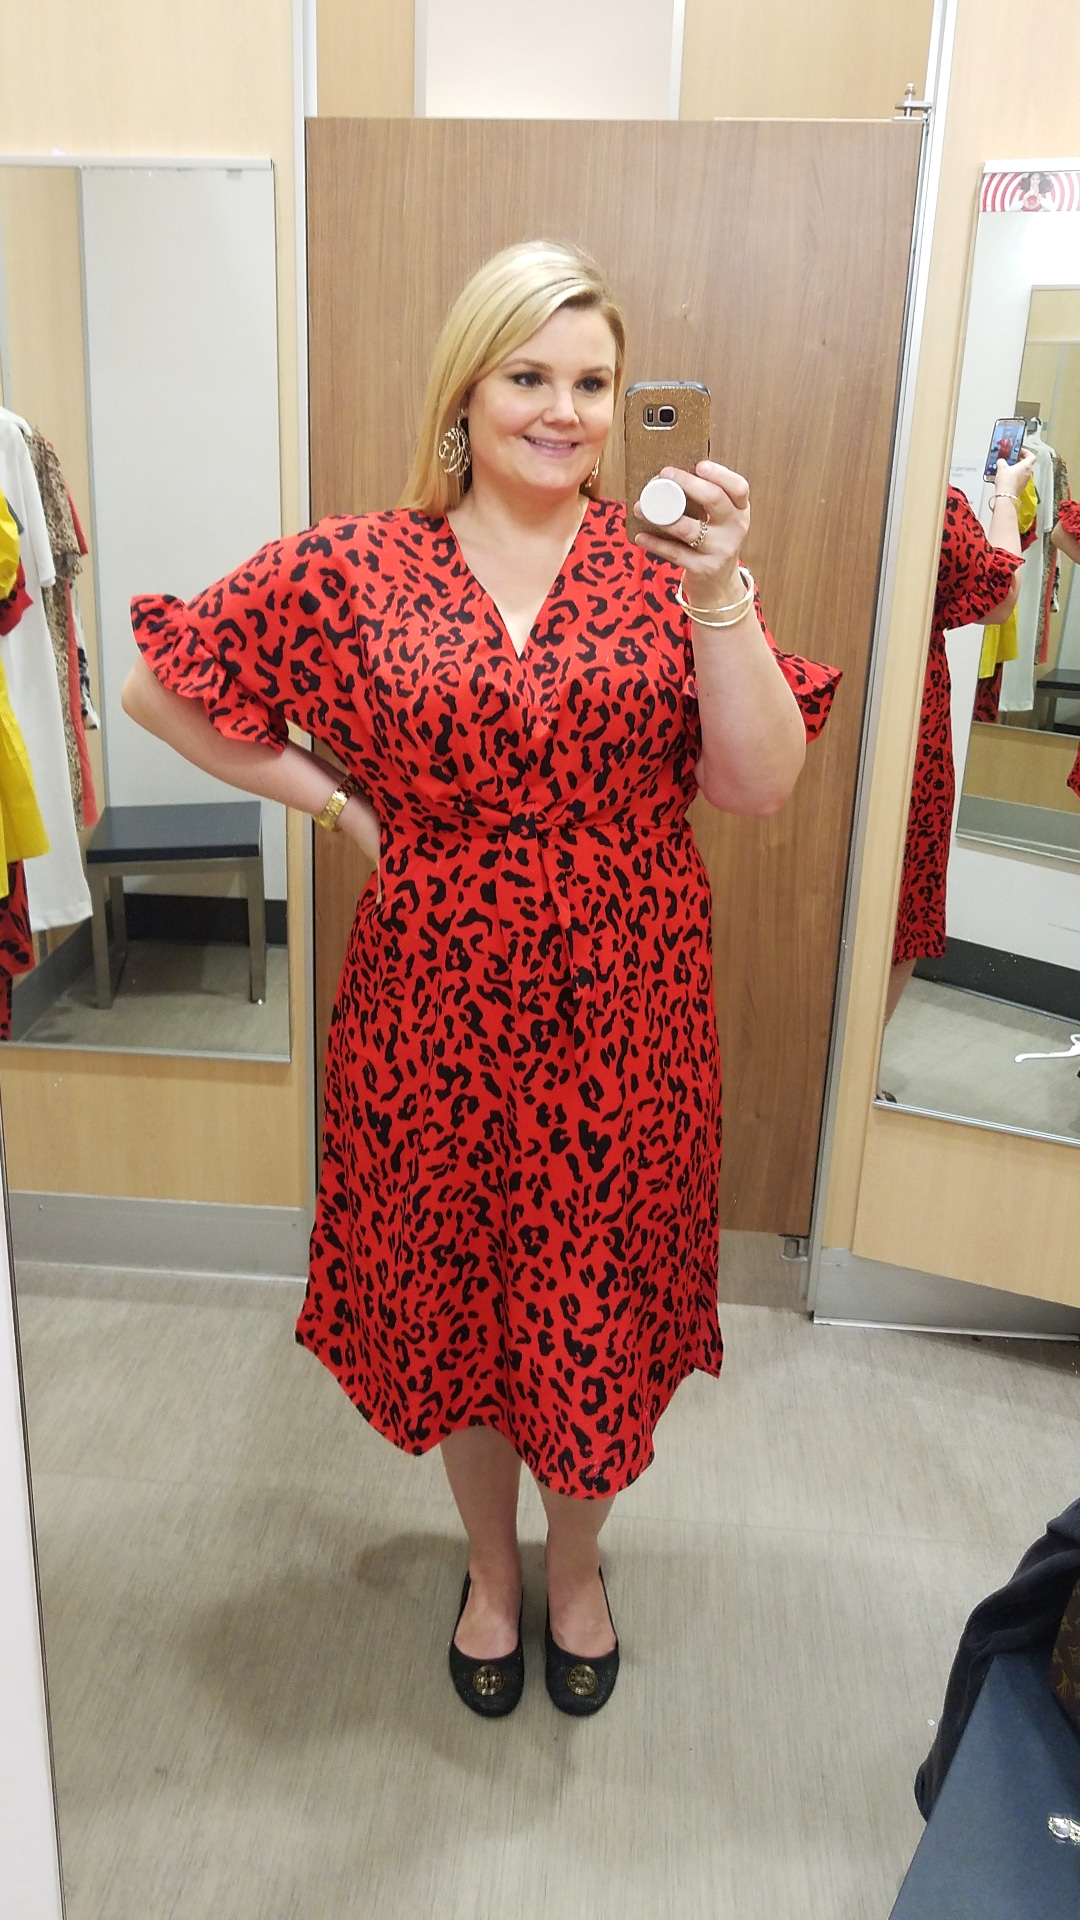 Orlando blogger Emily of Fabulously Overdressed shares this pretty red spring dress from Target